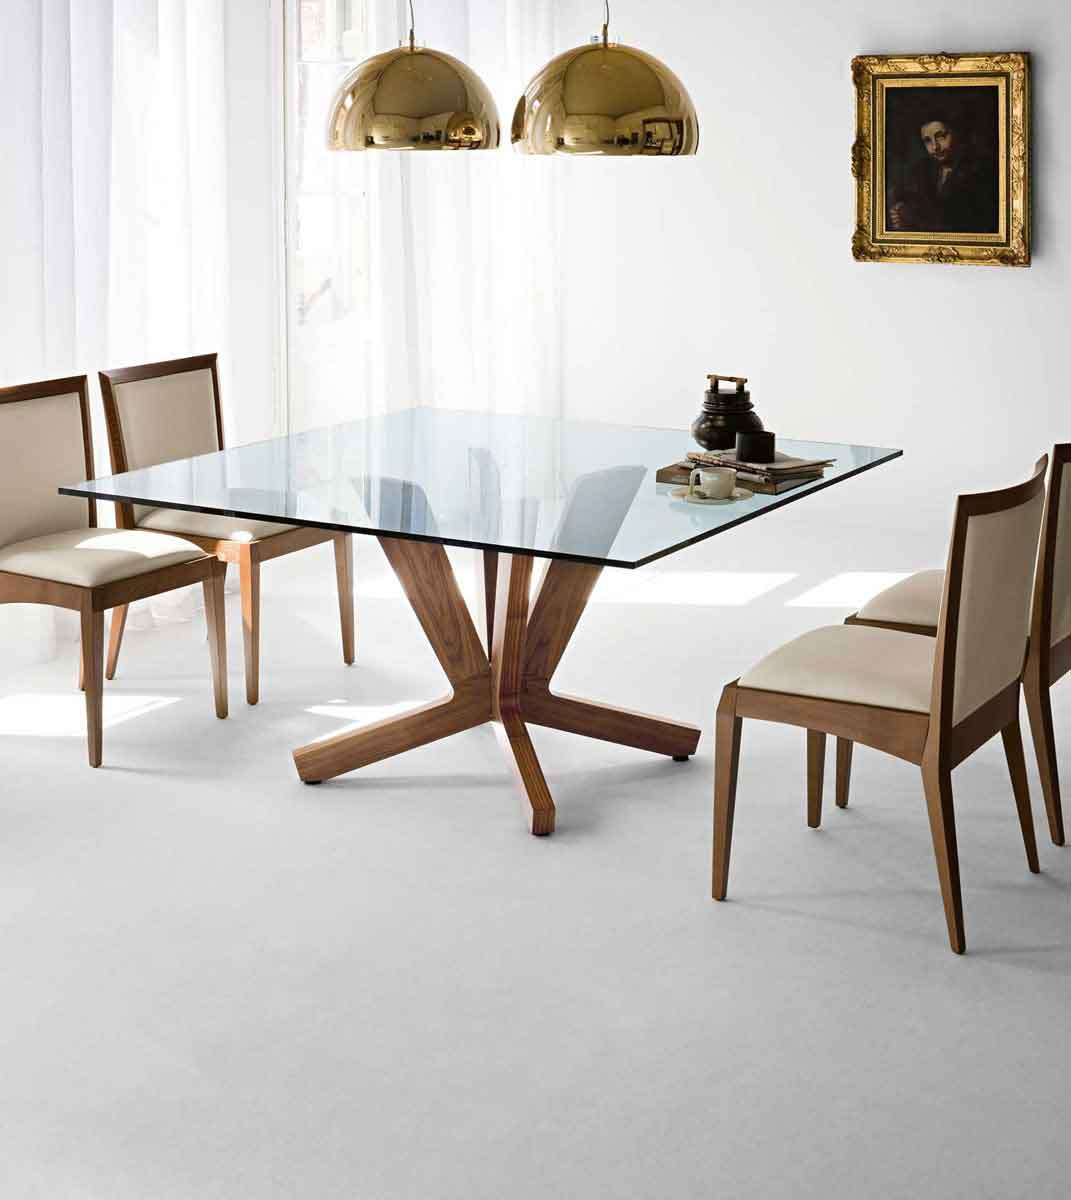 Make The Dining Table Through Designer Square Easy To Room Table